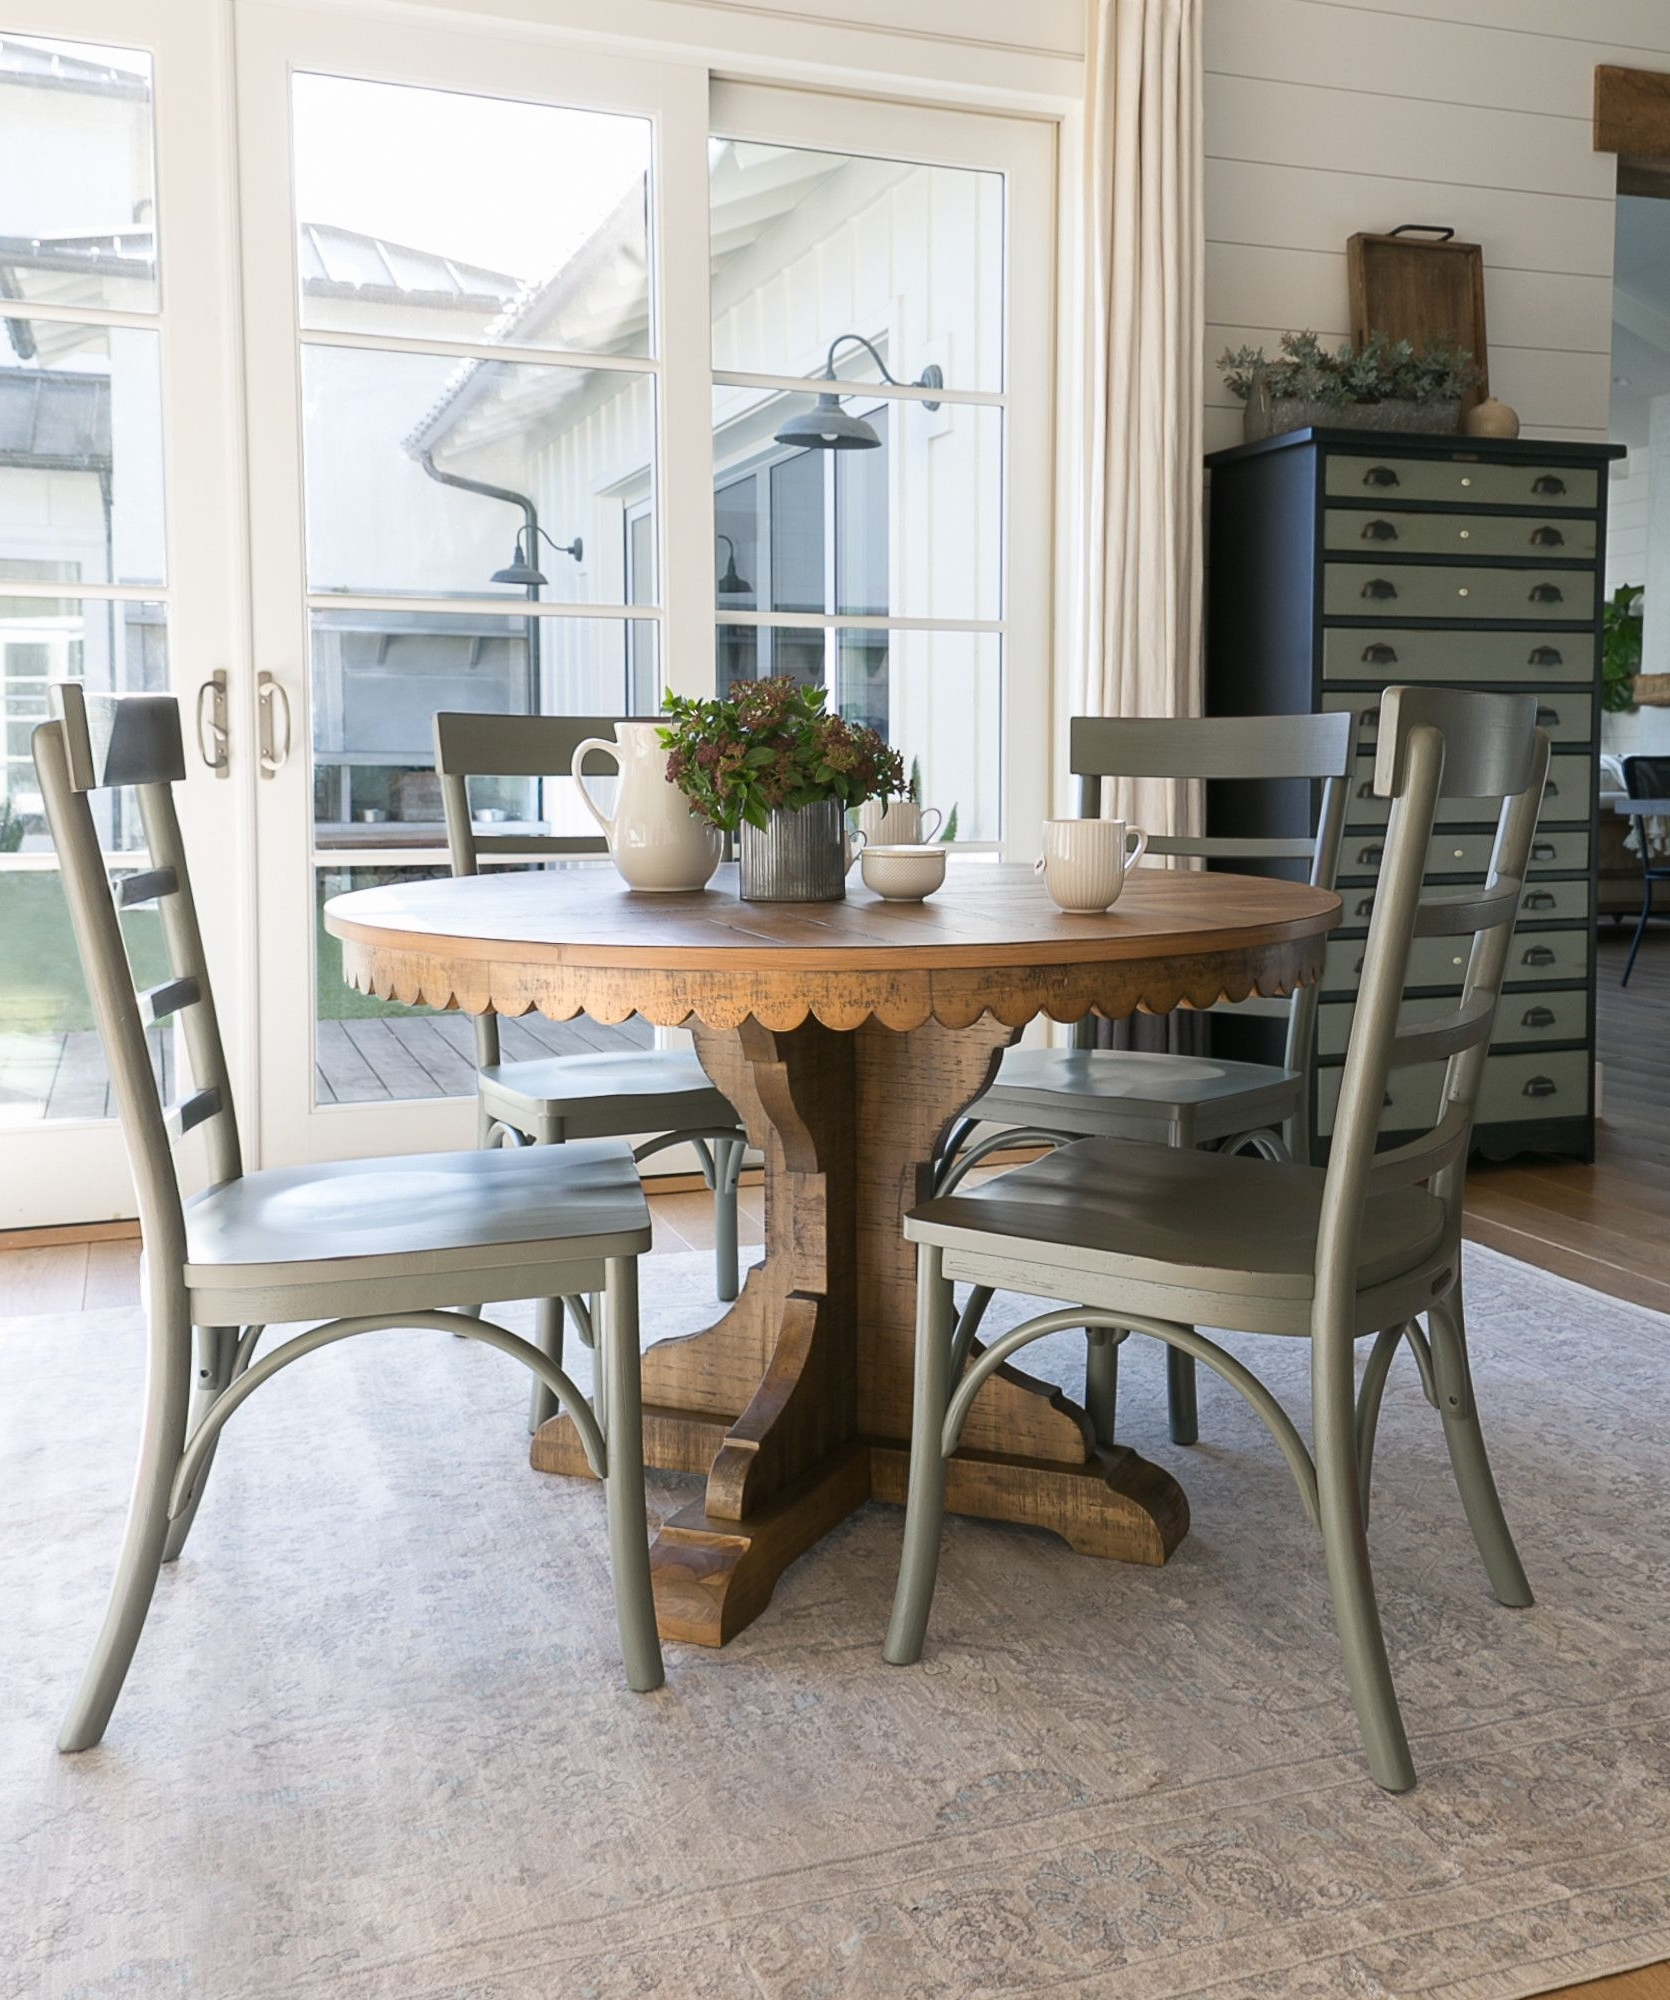 Favorite Magnolia Home Top Tier Round Dining Tables For Magnolia Home Top Tier Round Dining Tablejoanna Gaines (View 5 of 25)